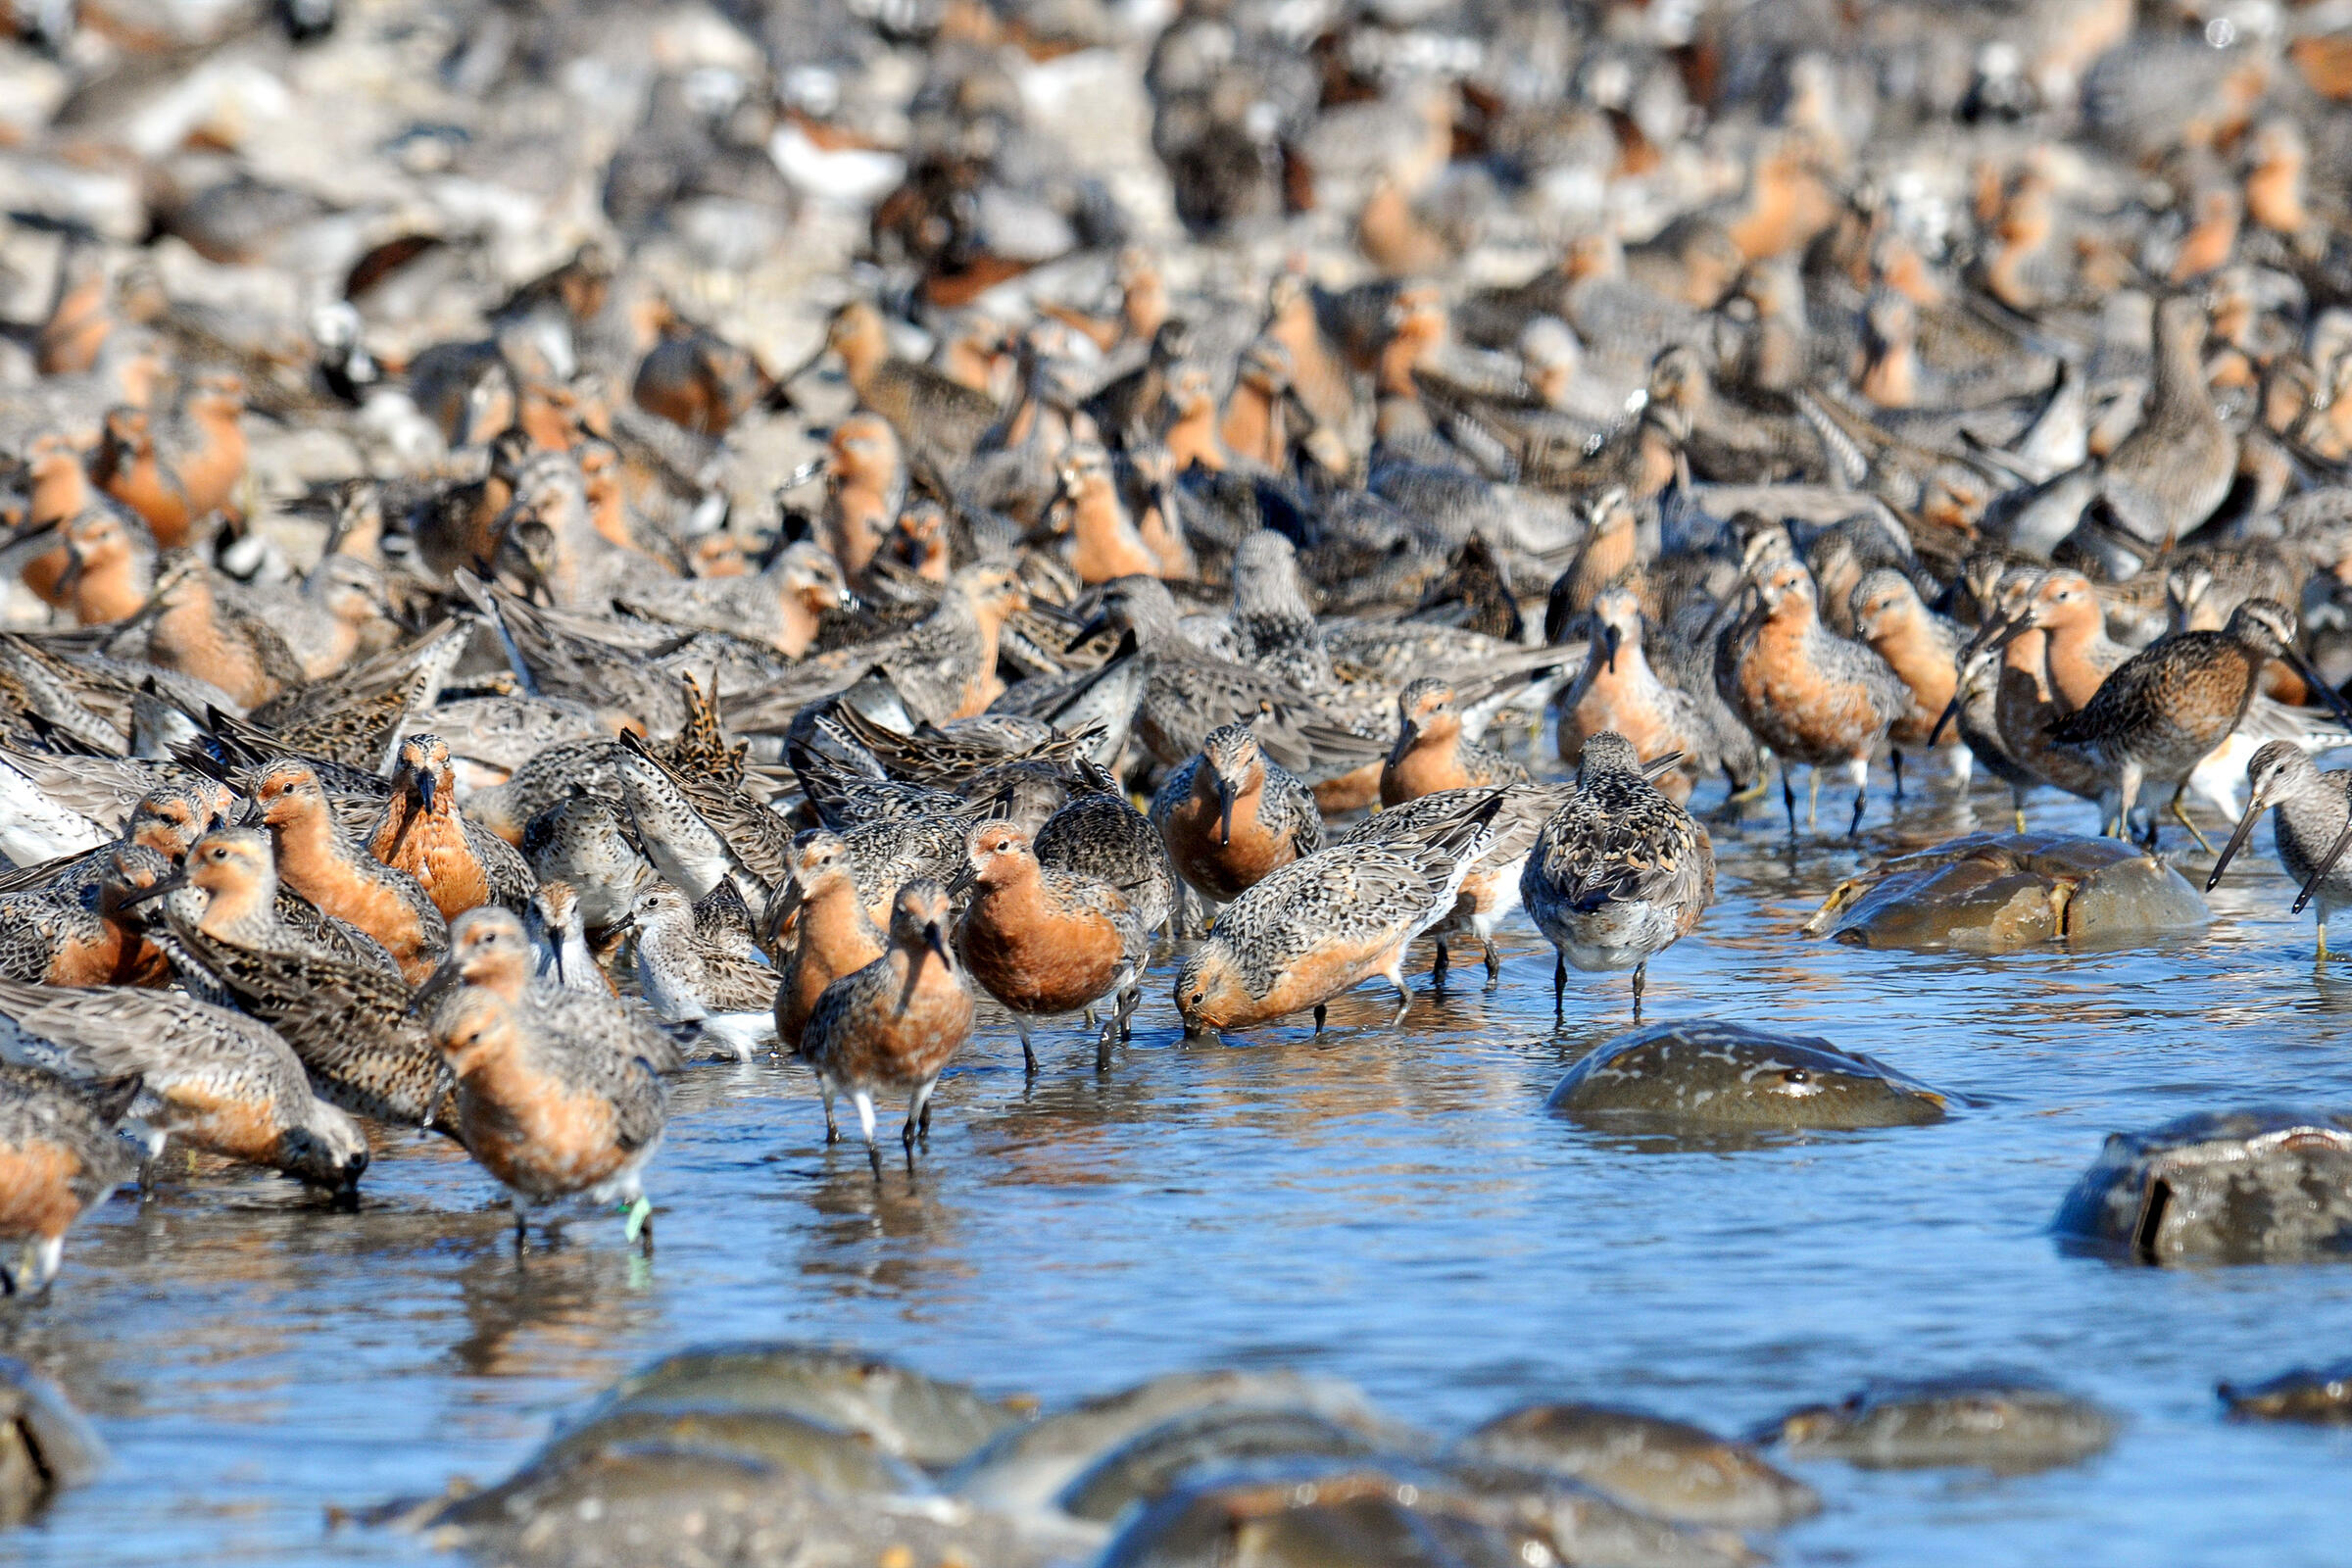 Red Knots and horseshoe crabs in Delaware Bay. Gregory Breese/USFWS